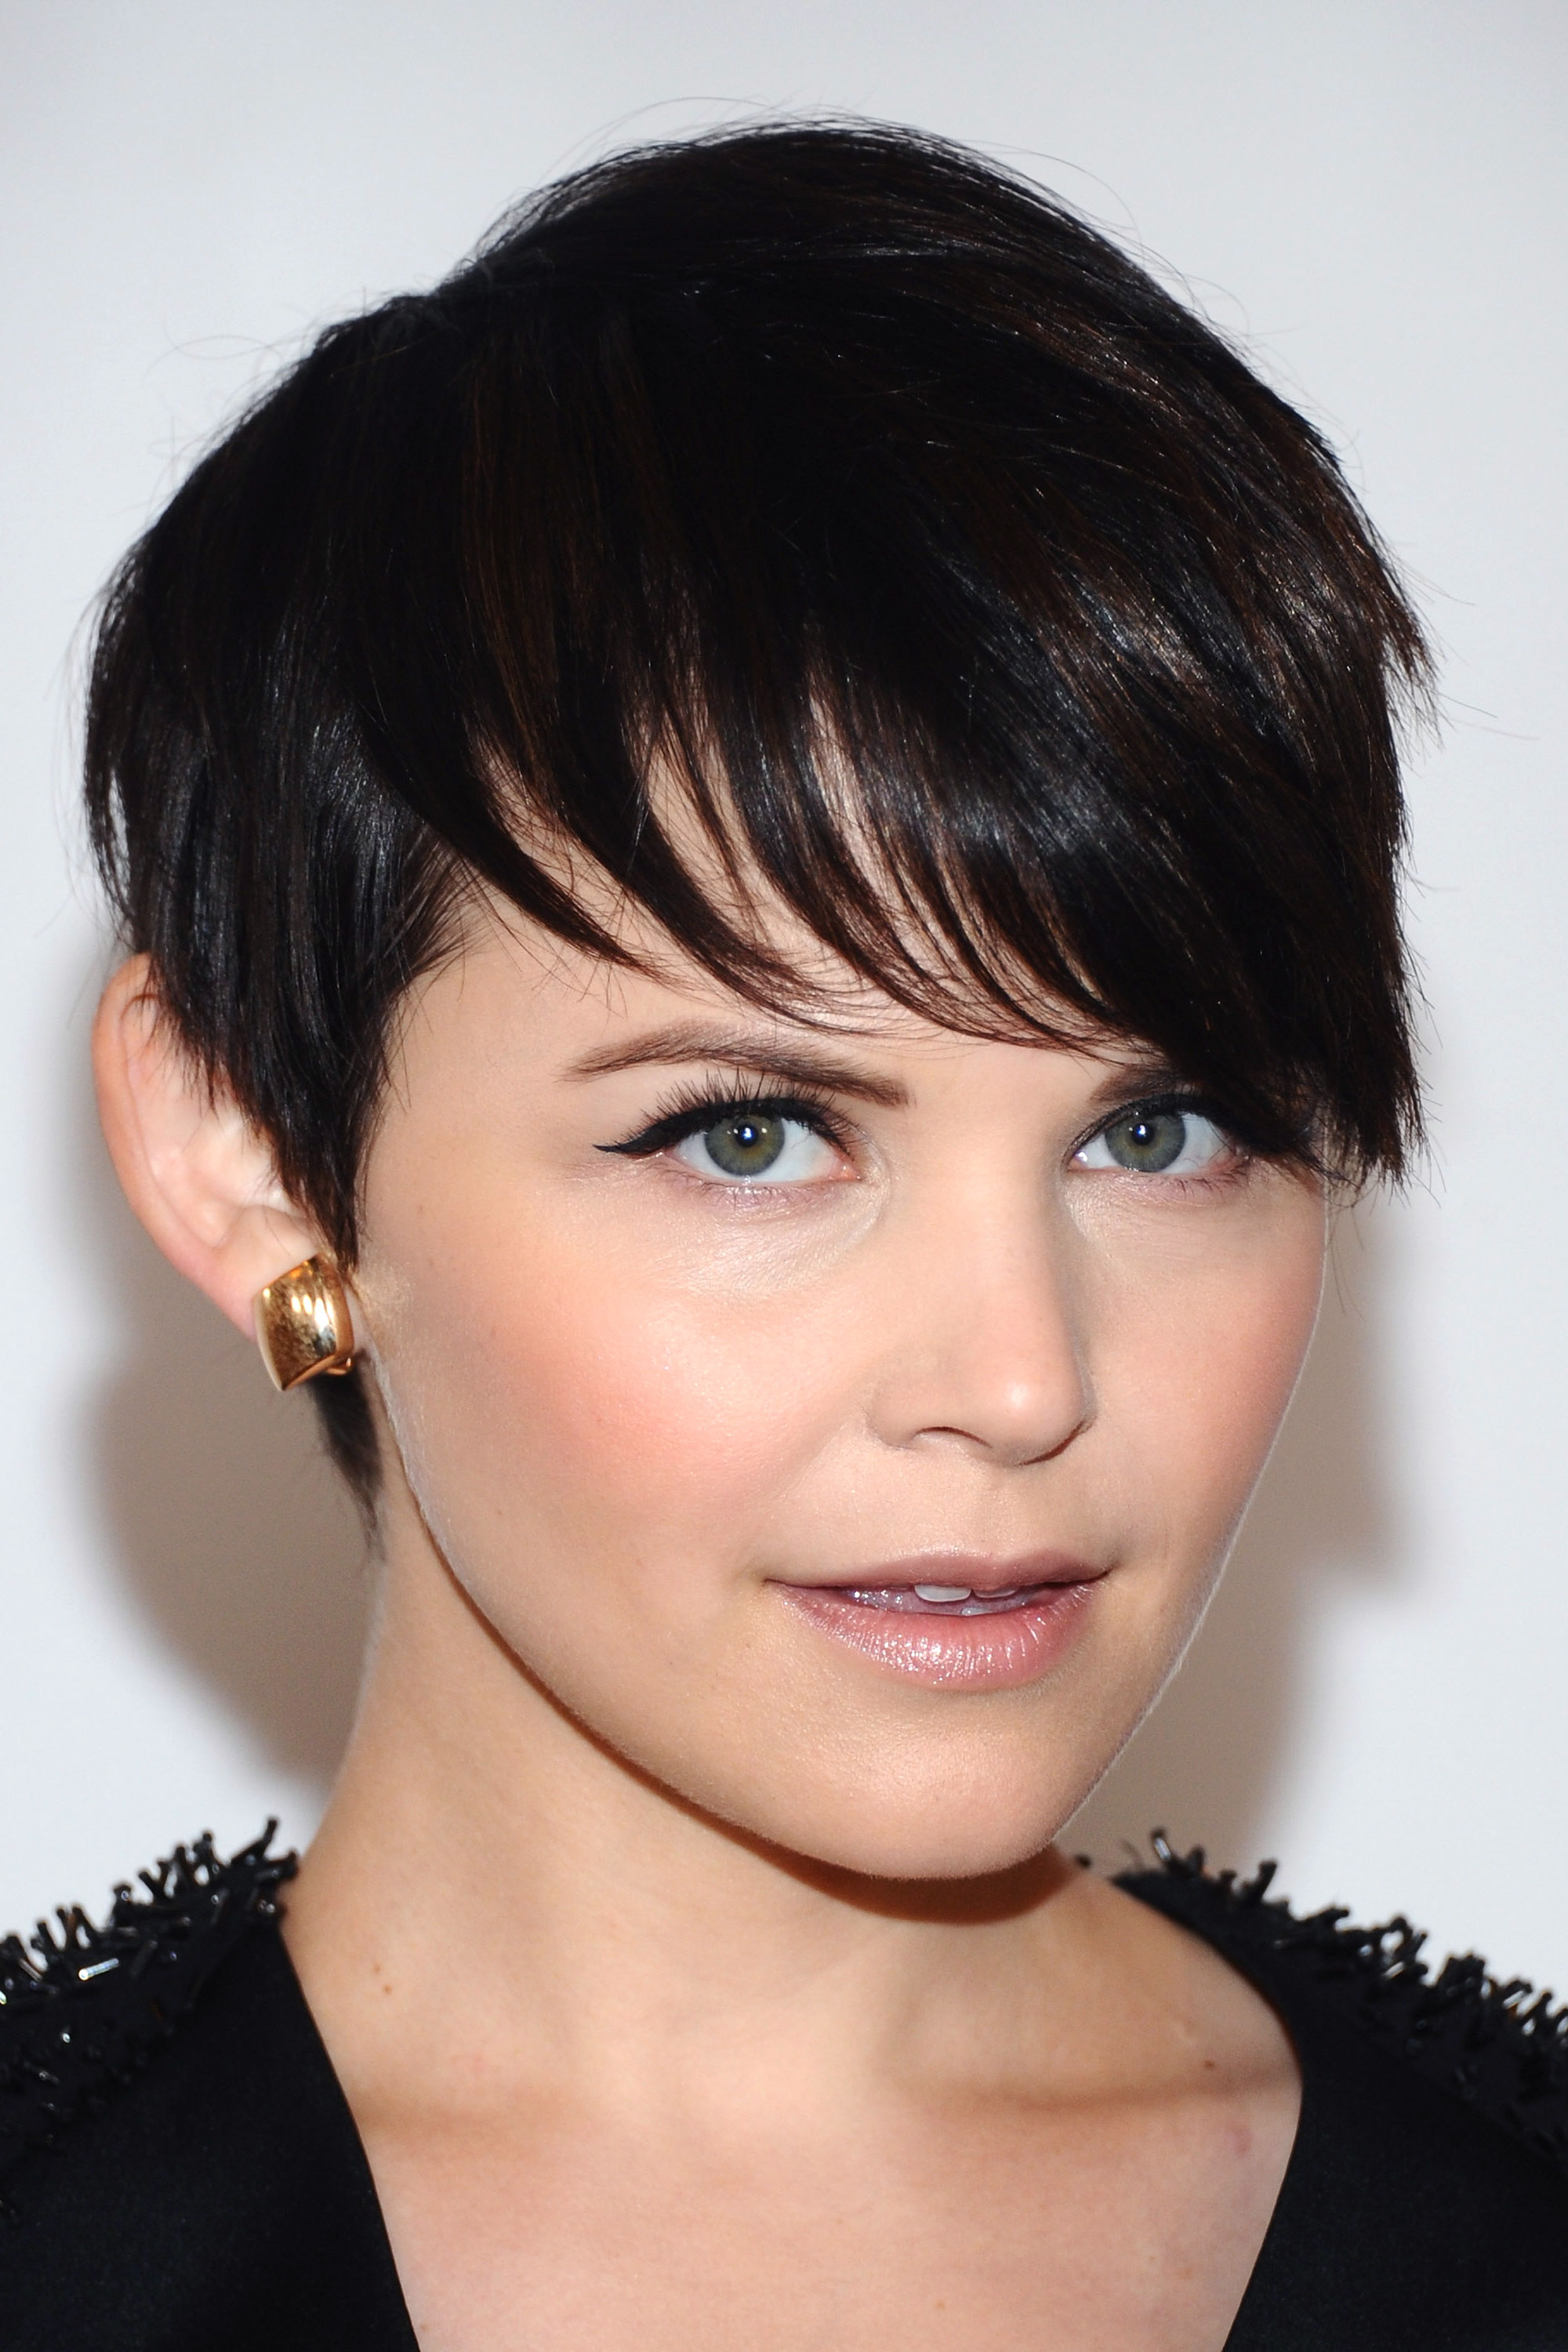 Short hairstyles for women – 35 advice for choosing – HairStyles for ...